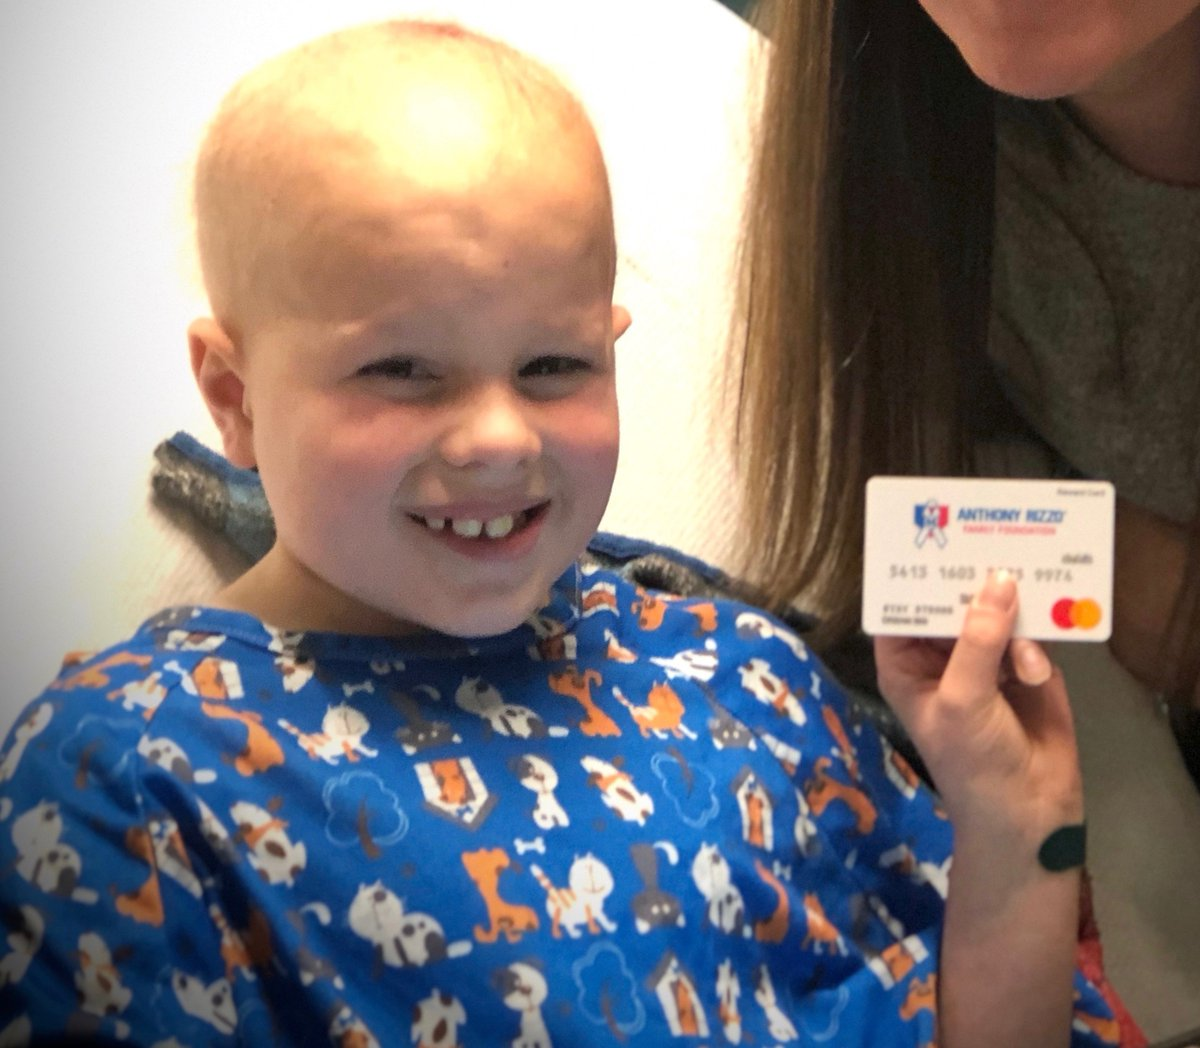 Help us make a difference this holiday season. Purchase a gift card and bring some joy to a child battling cancer by giving them something to smile about after a chemo treatment. amazon.com/hz/wishlist/ls…